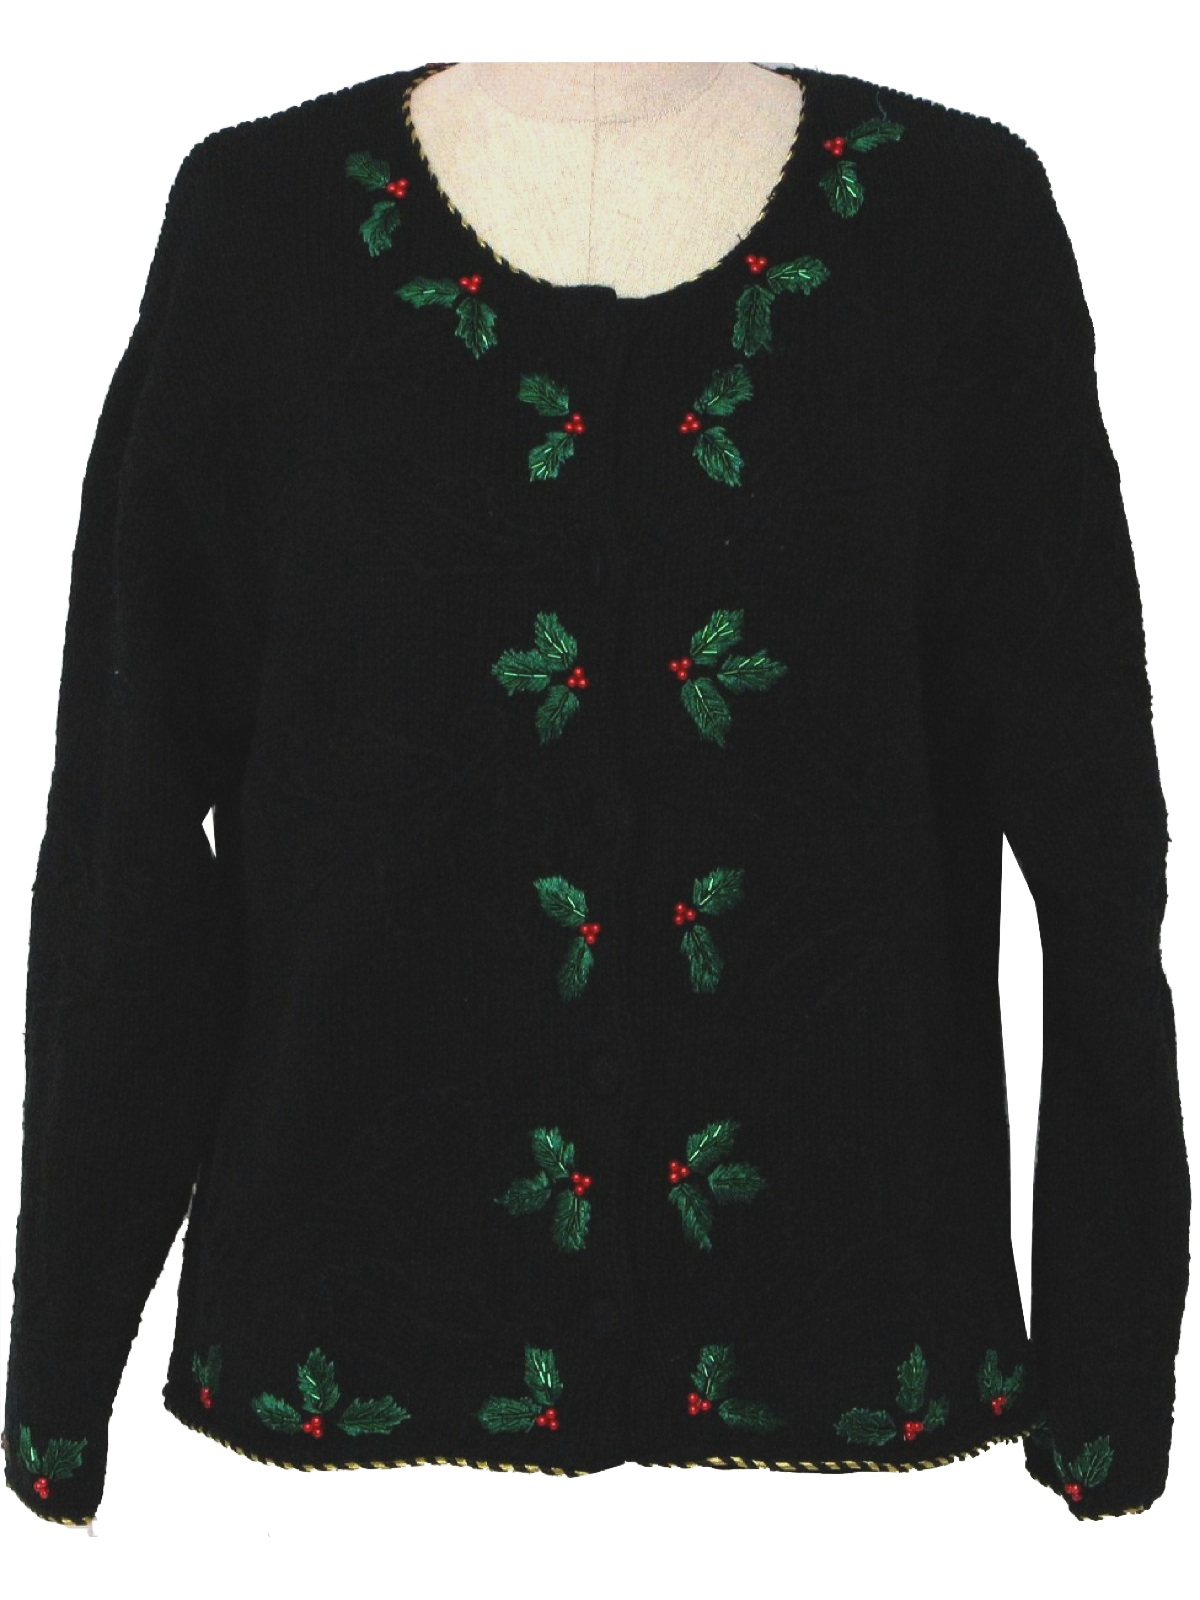 ugly christmas sweater croft and barrel unisex black cotton and ramie hand knit christmas sweater with scoop round neckline dimensional knit in holly